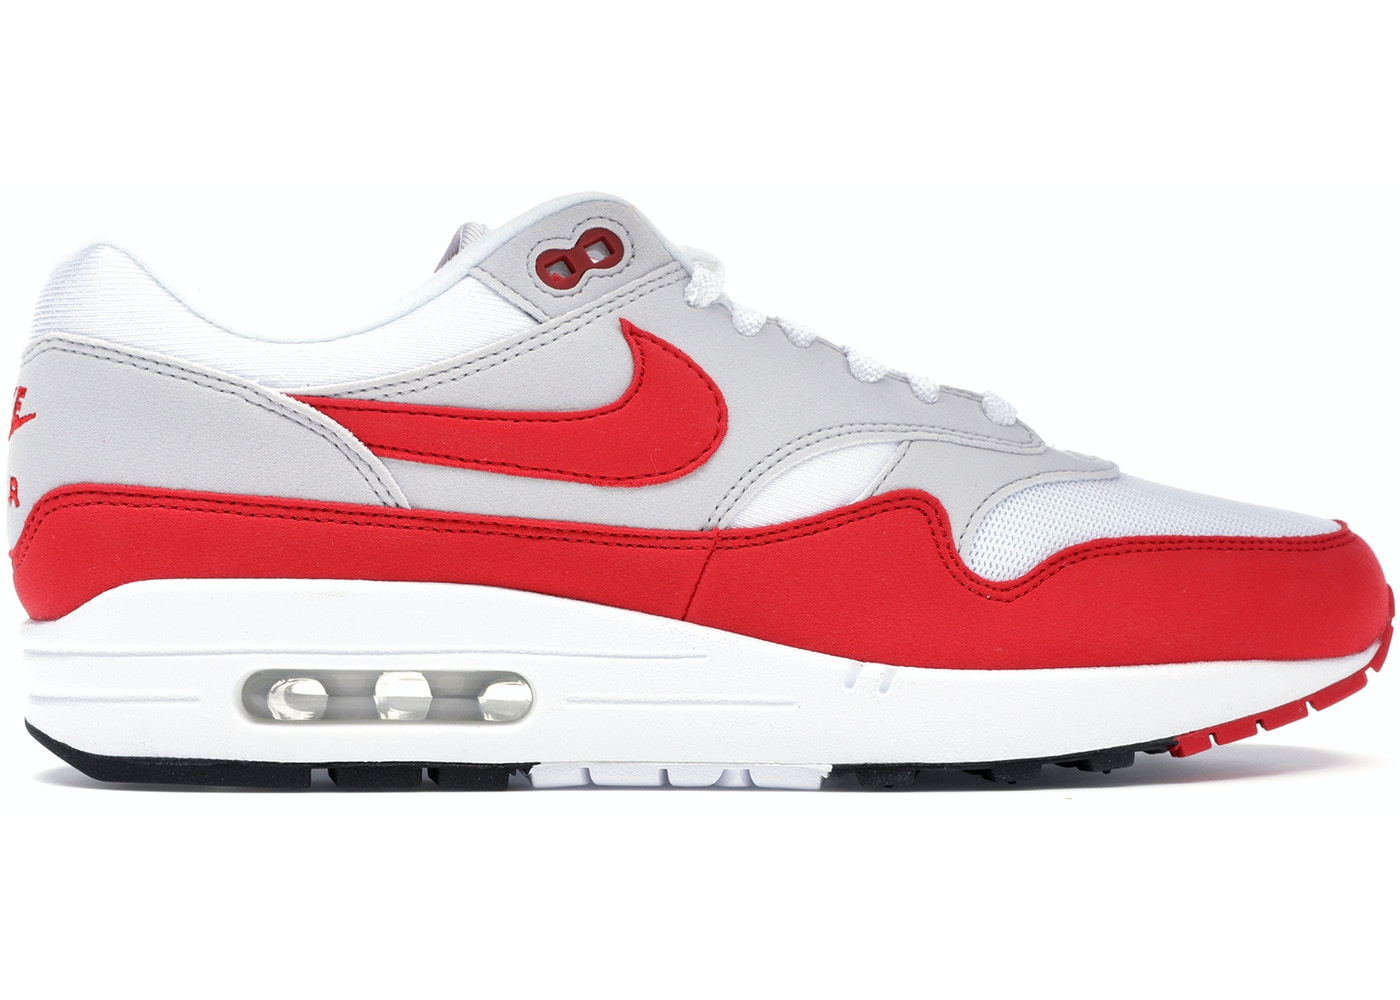 53dc923506 Buy Nike Air Max Shoes & Deadstock Sneakers